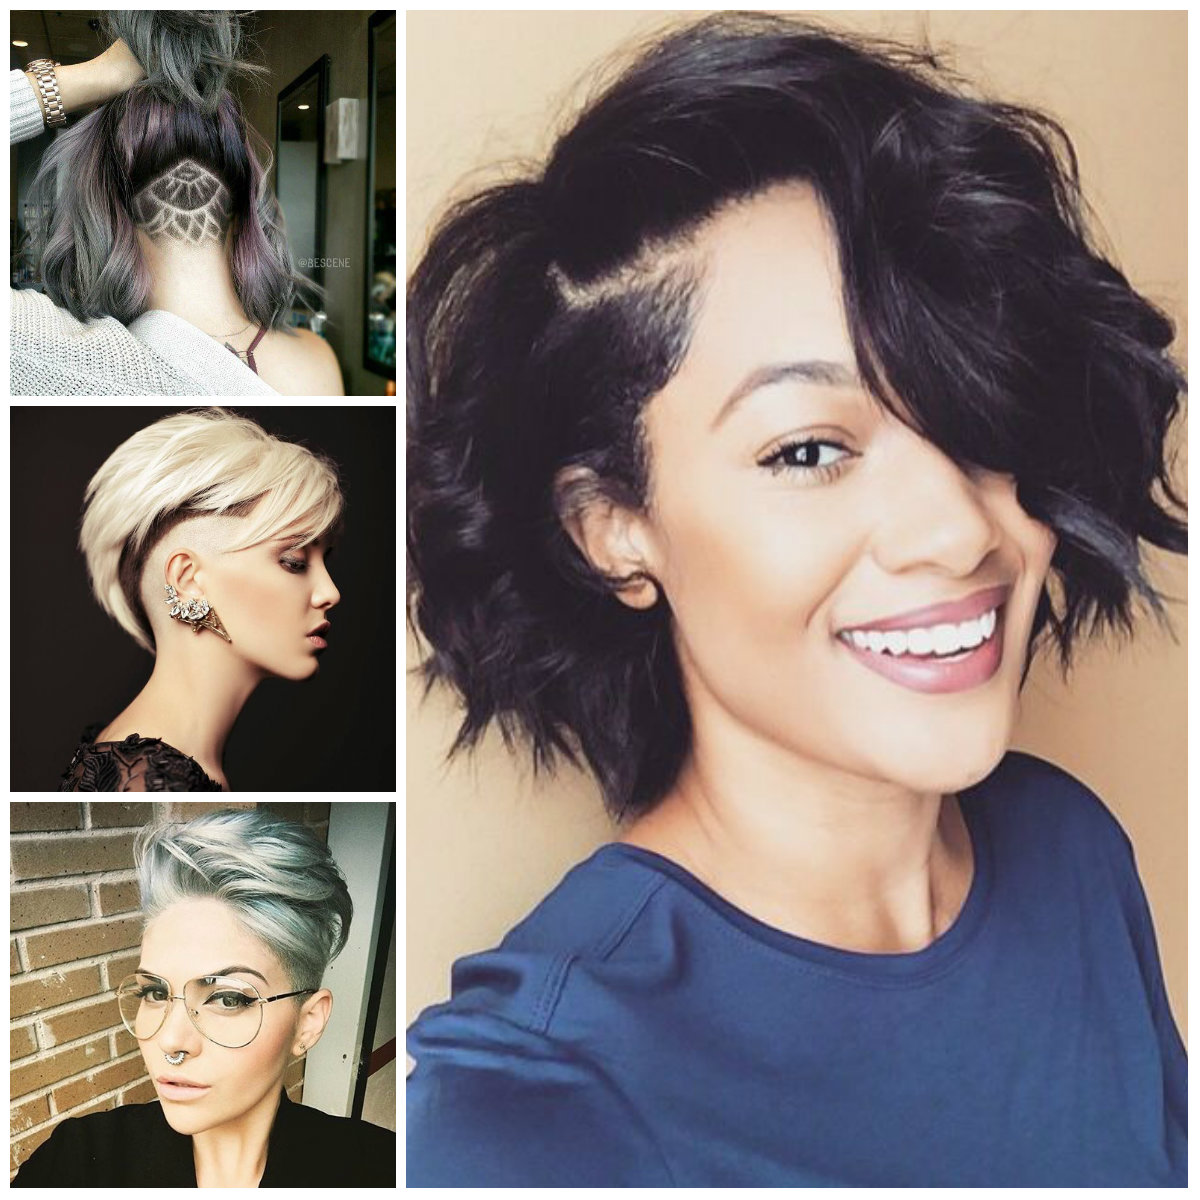 shaved hairstyles for females